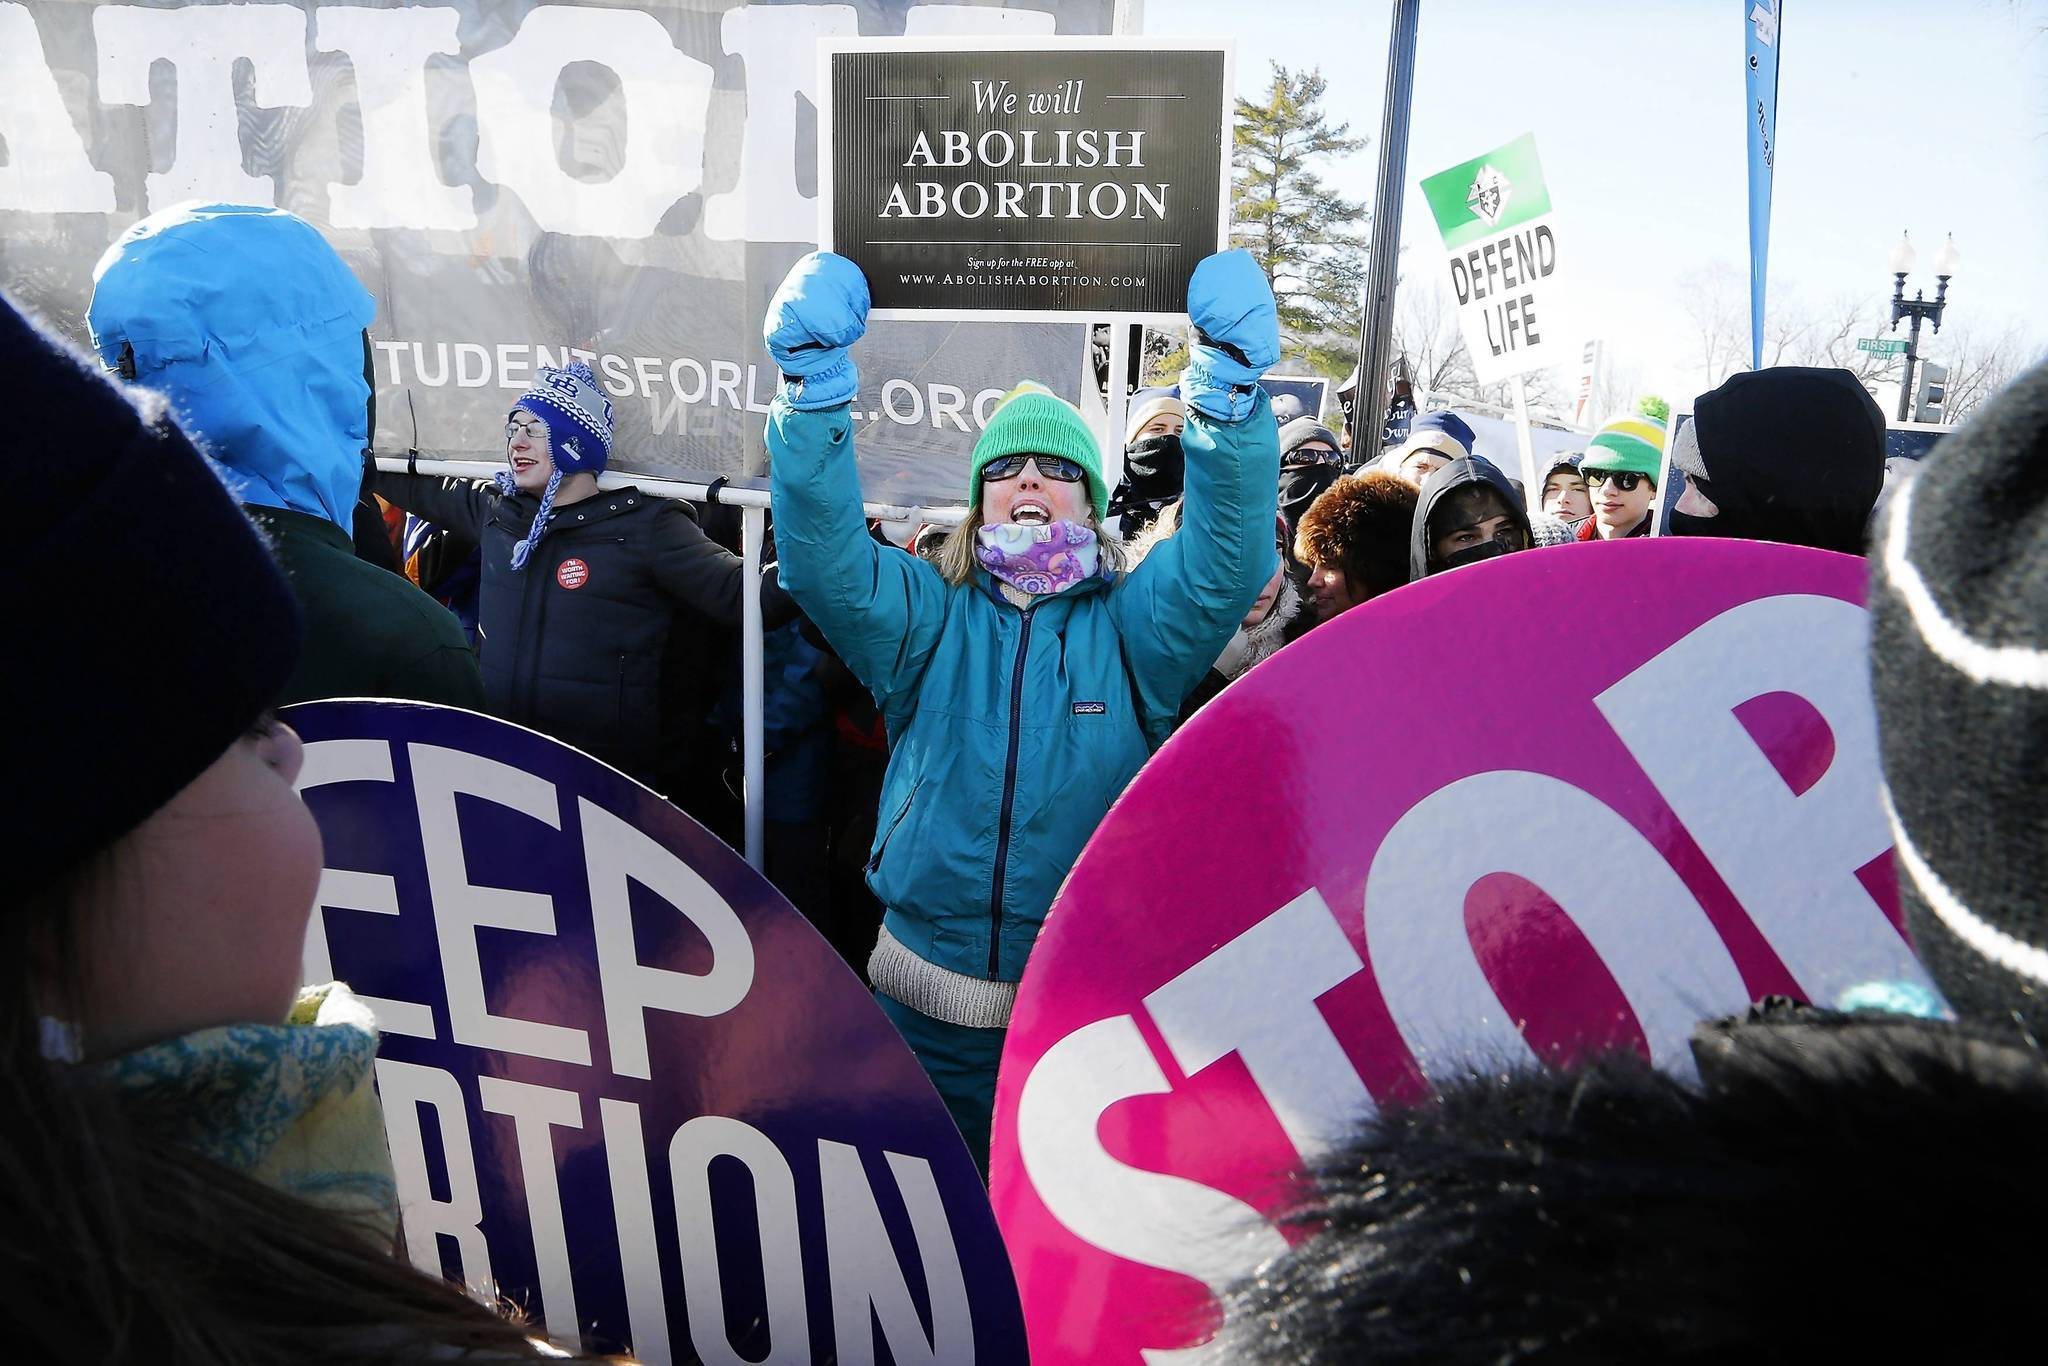 the debate over legalizing abortion